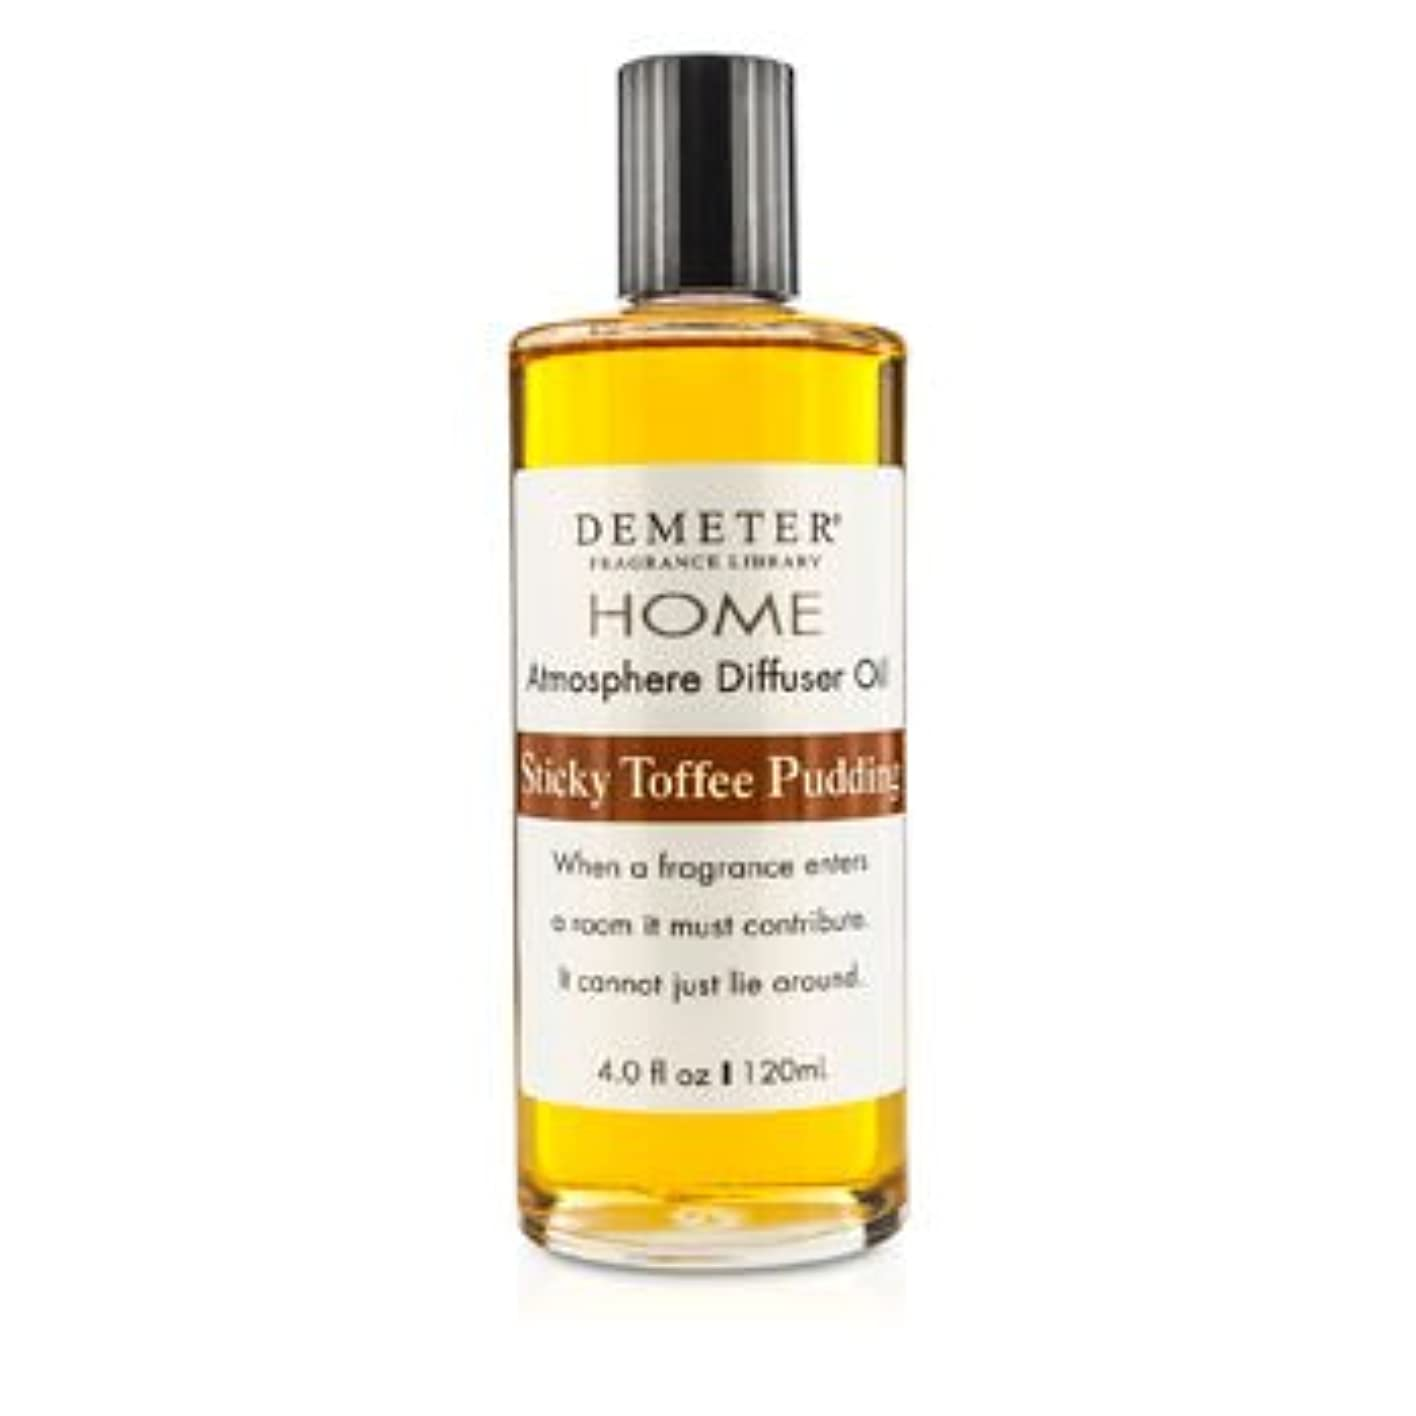 スパイおとなしい地理[Demeter] Atmosphere Diffuser Oil - Sticky Toffee Pudding 120ml/4oz